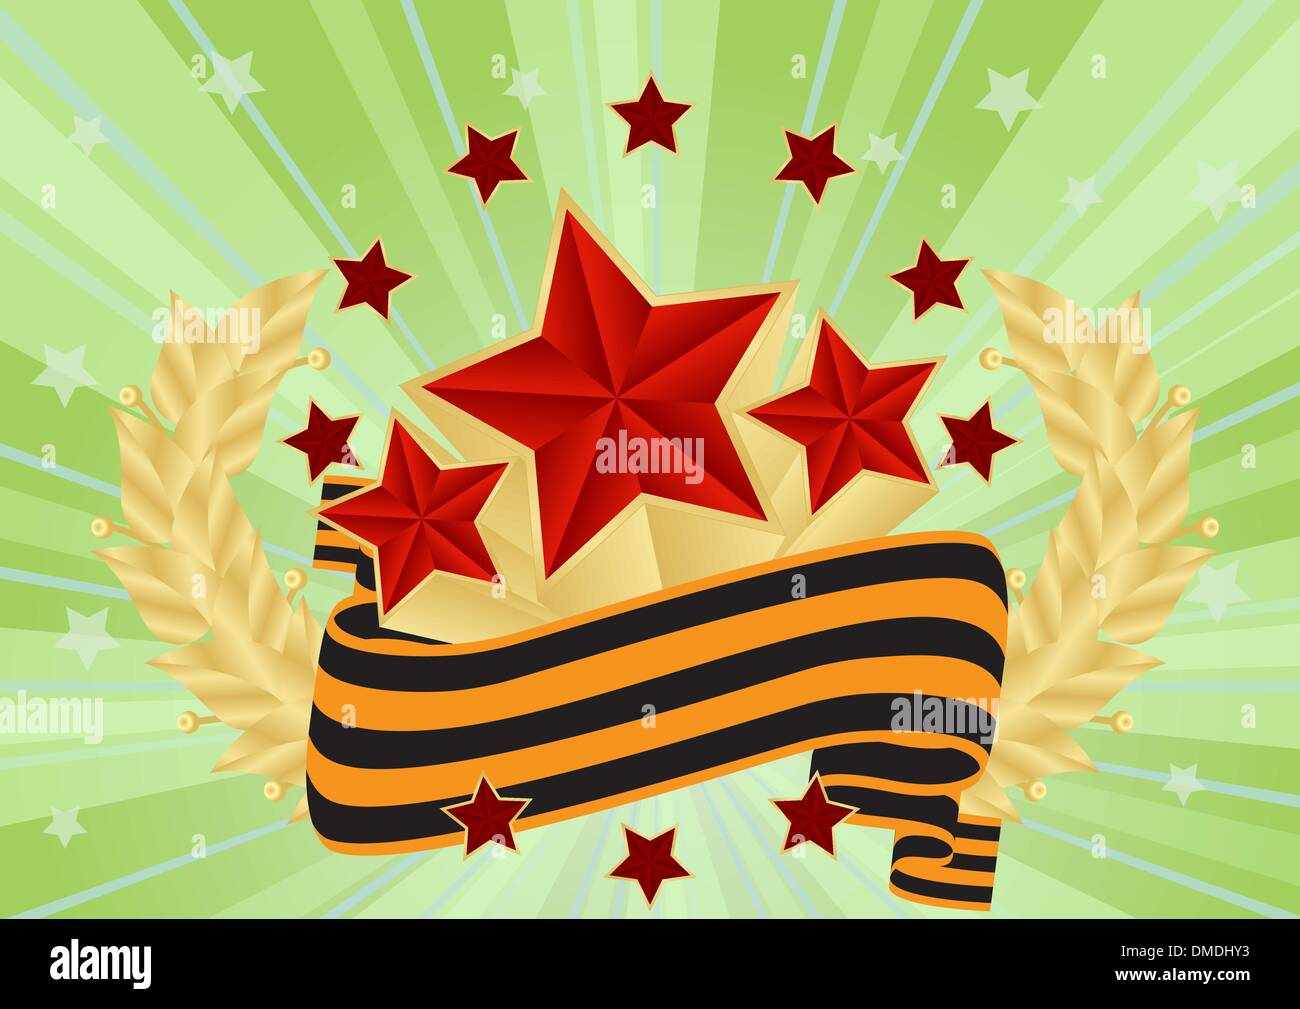 greeting card with red stars - Stock Vector